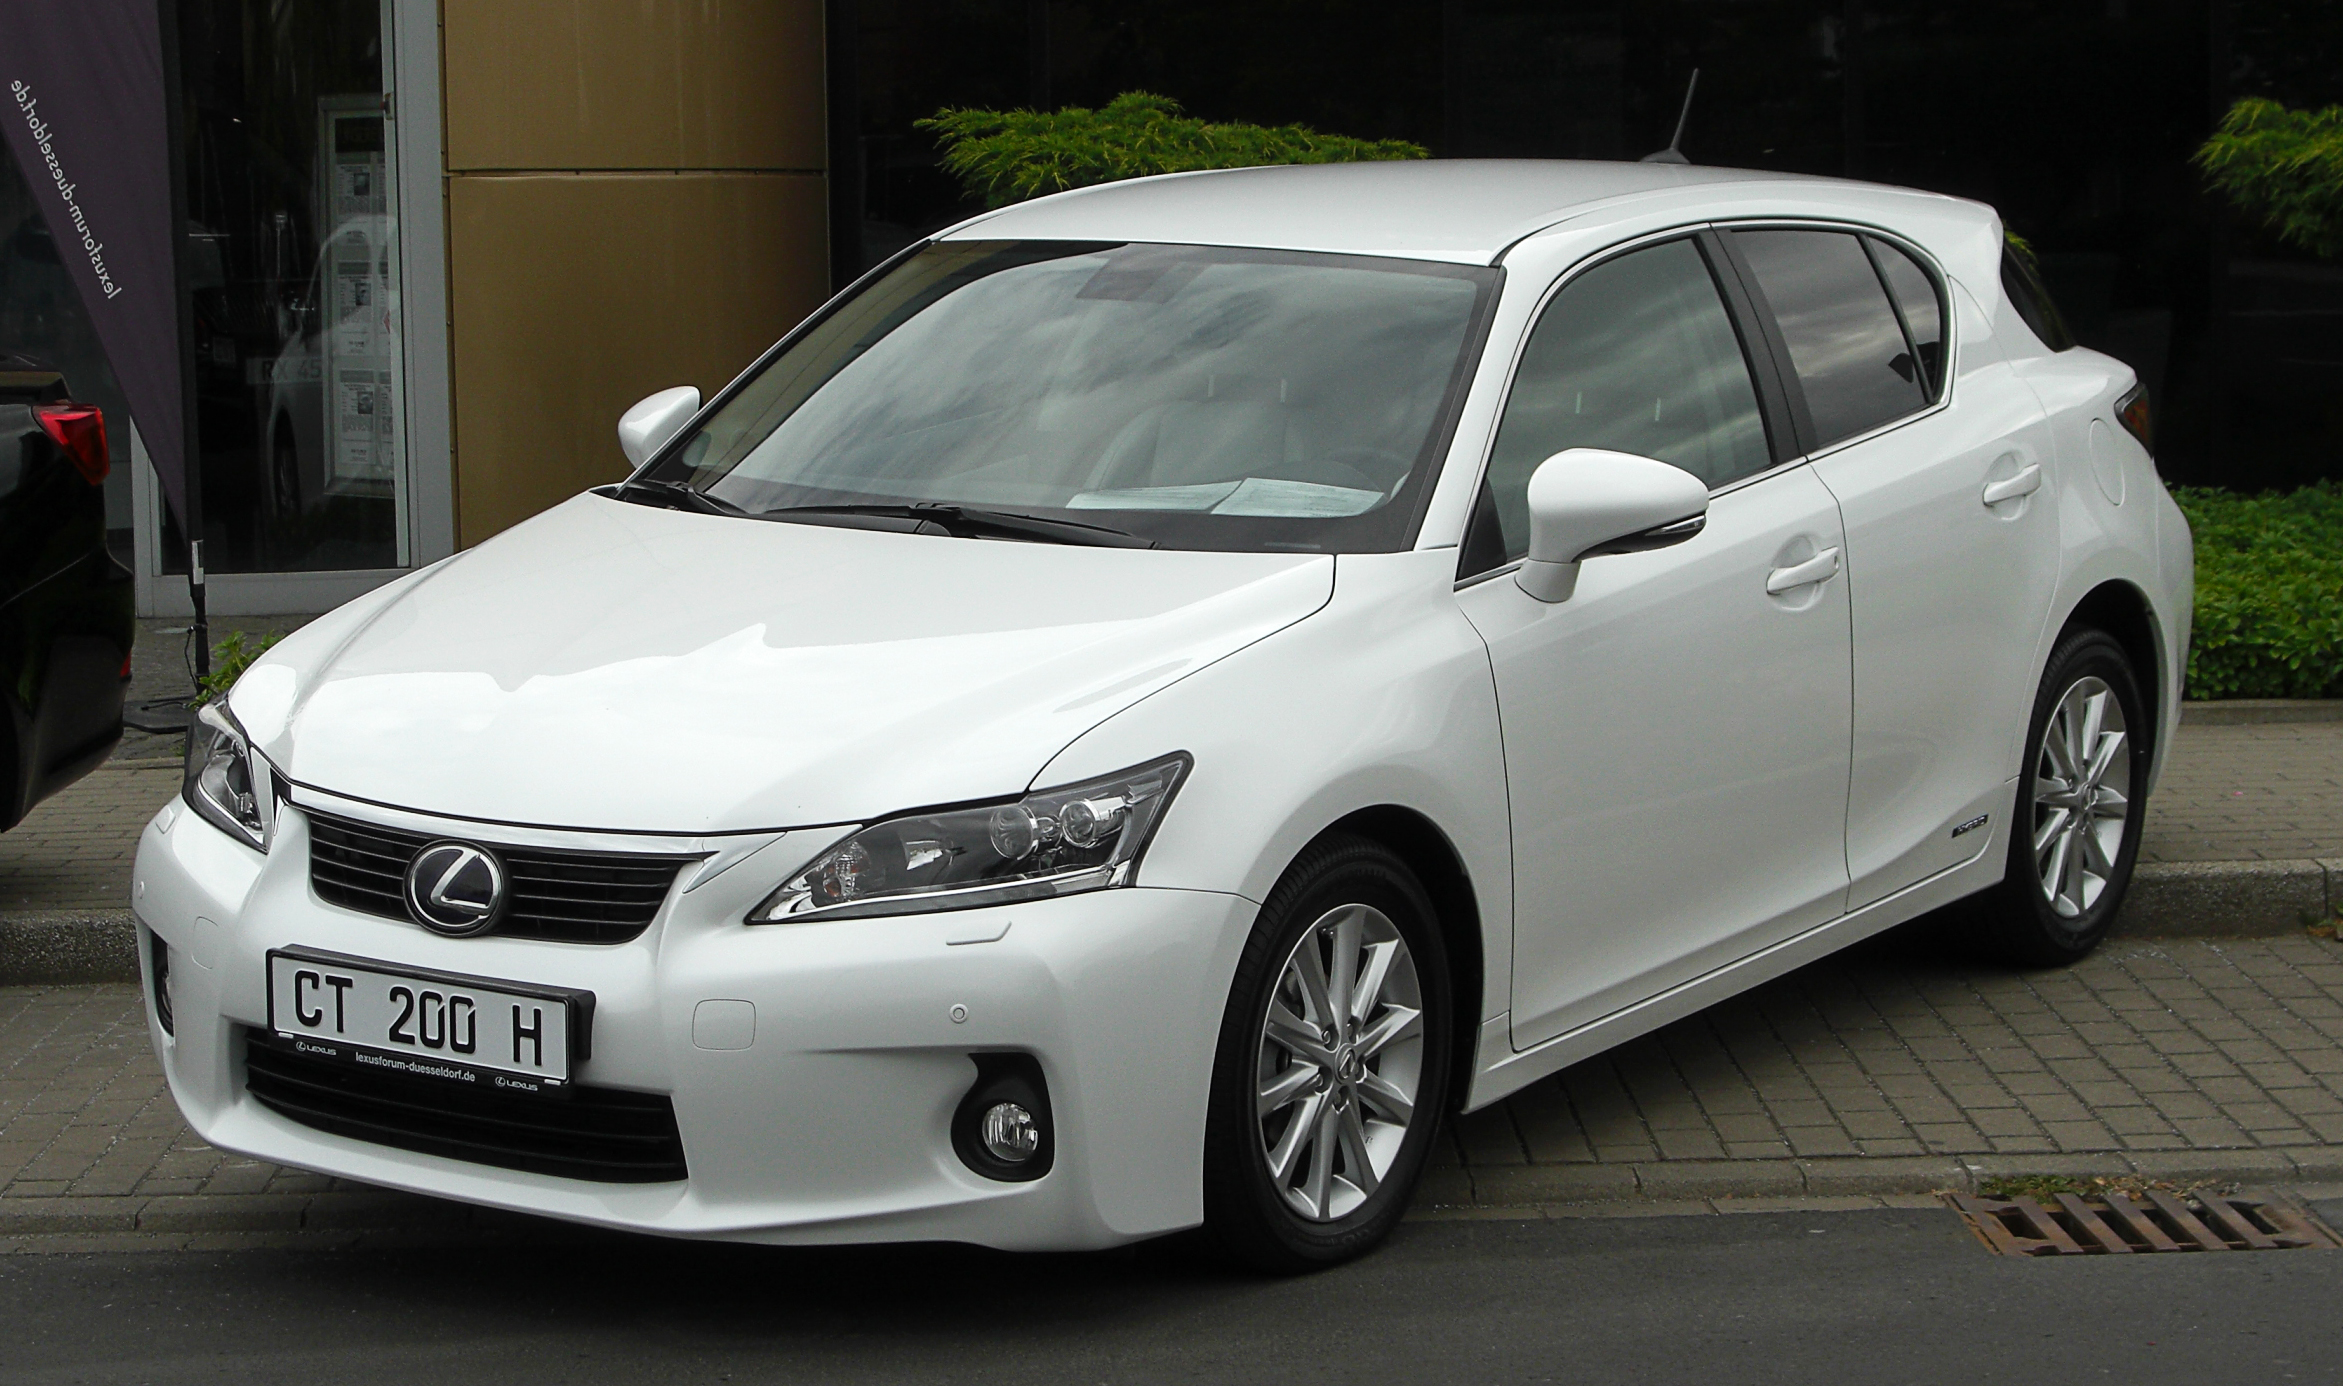 Farewell CT200h s ClubLexus Lexus Forum Discussion